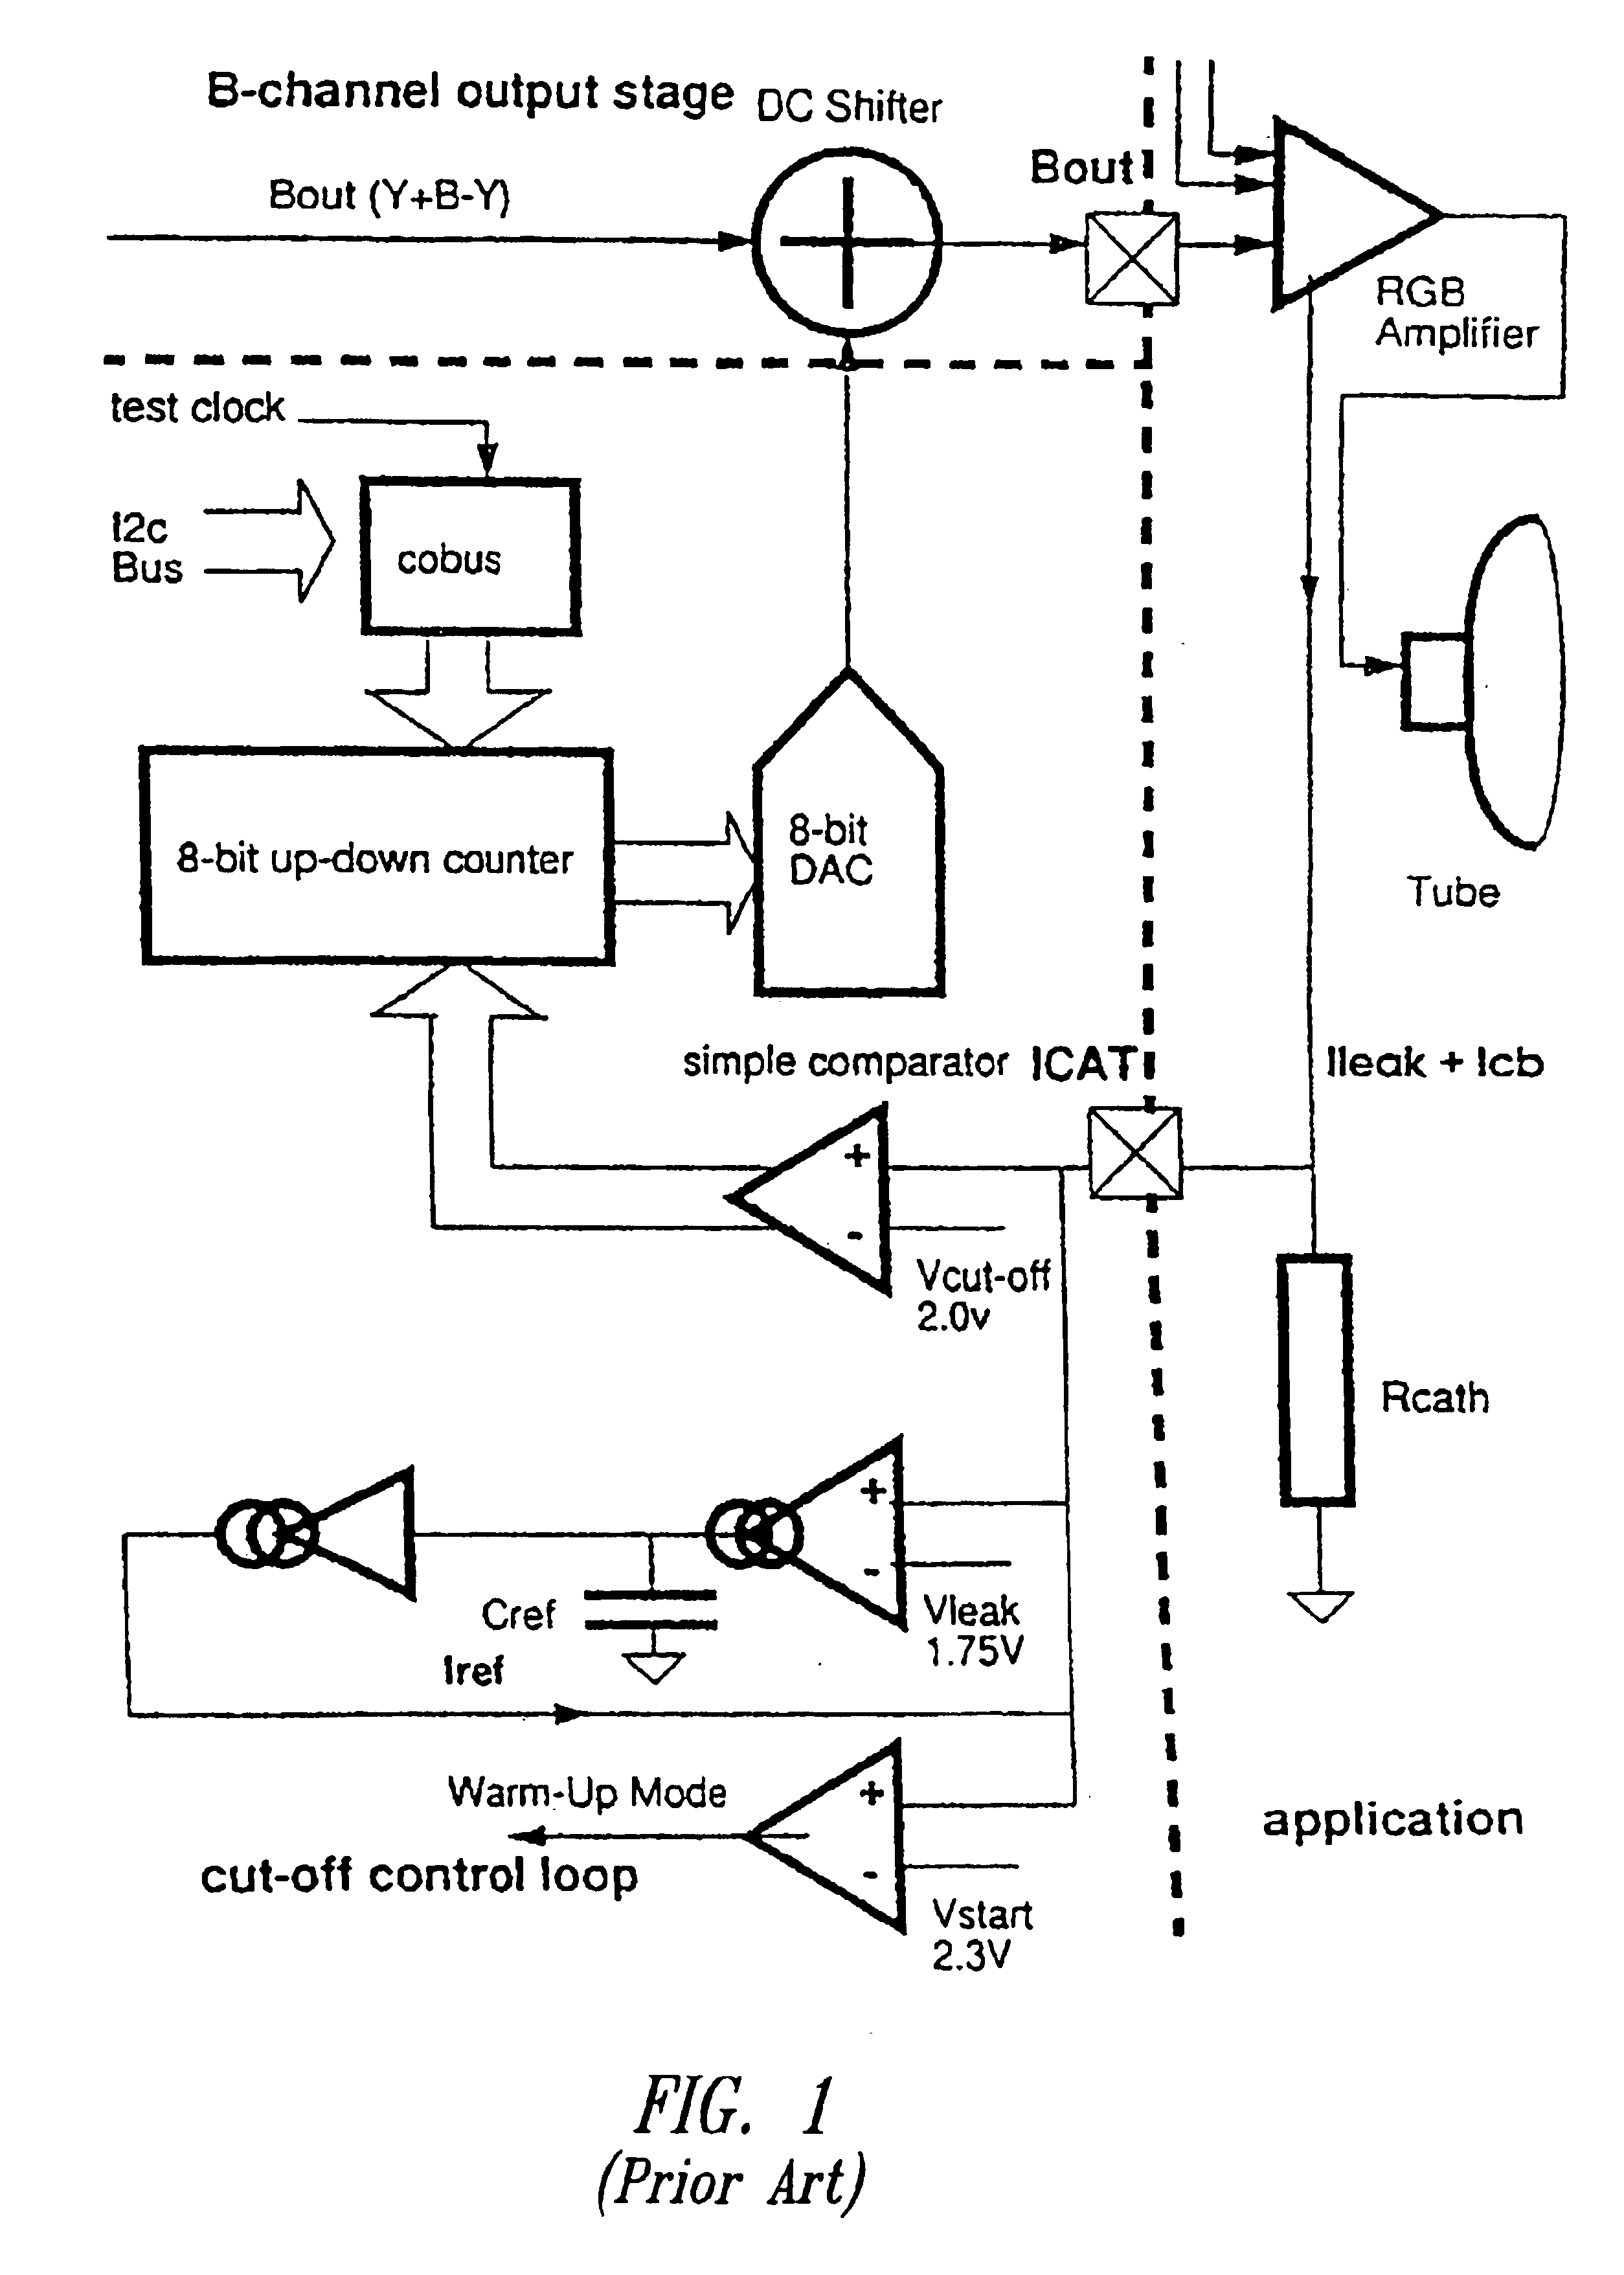 Patent Us6888575 Digital Cut Off Control Loop For Tv Using 8 Bit Comparator Circuit Diagram Drawing